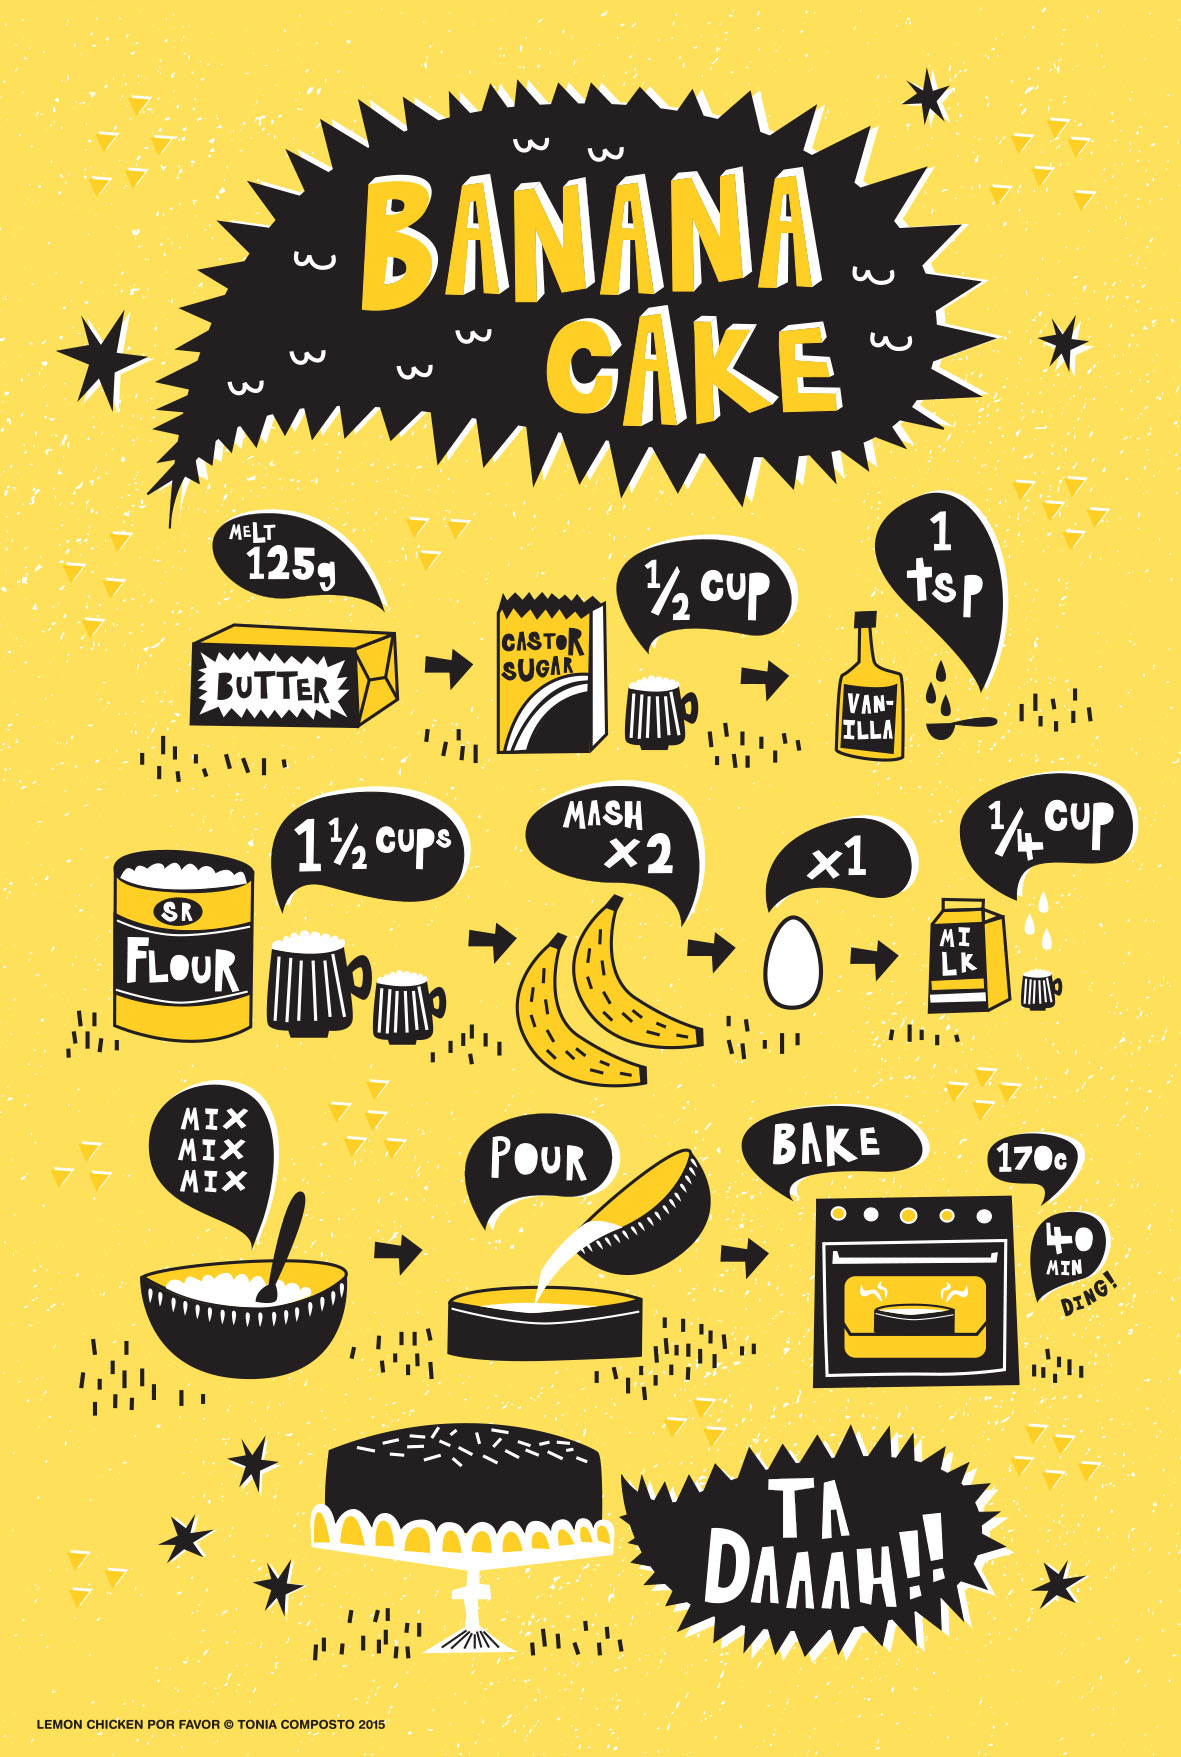 Banana Cake illustrated recipe